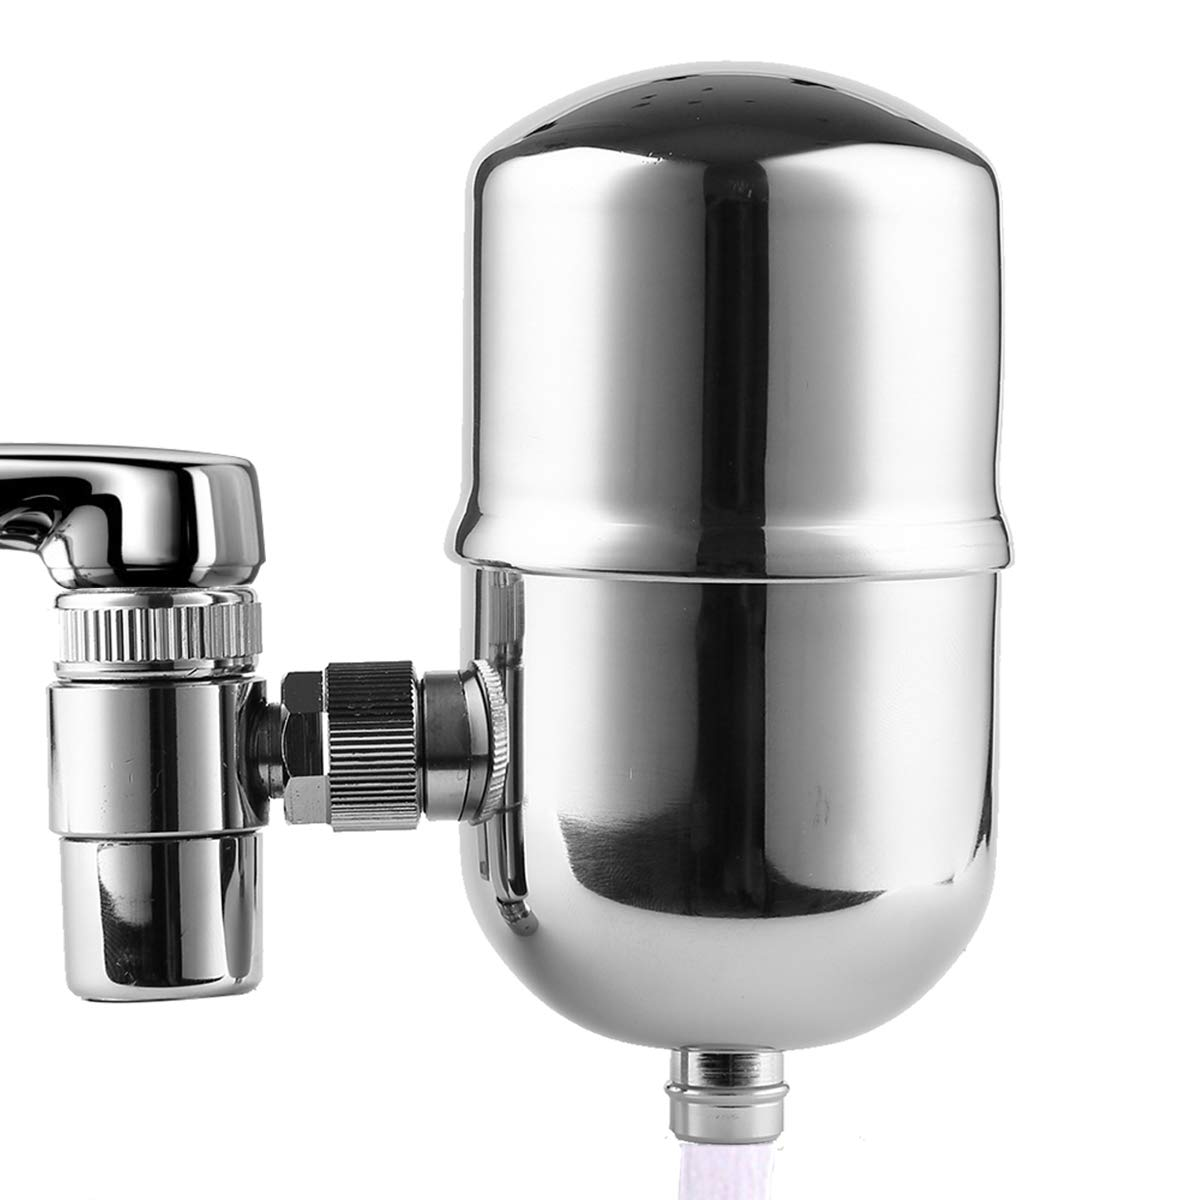 Engdenton Faucet Water Filter Stainless-Steel Reduce Chlorine High Water Flow, Water Purifier with Ultra Adsorptive Material , Water Filters for Faucets-Fits Standard Faucets by Engdenton